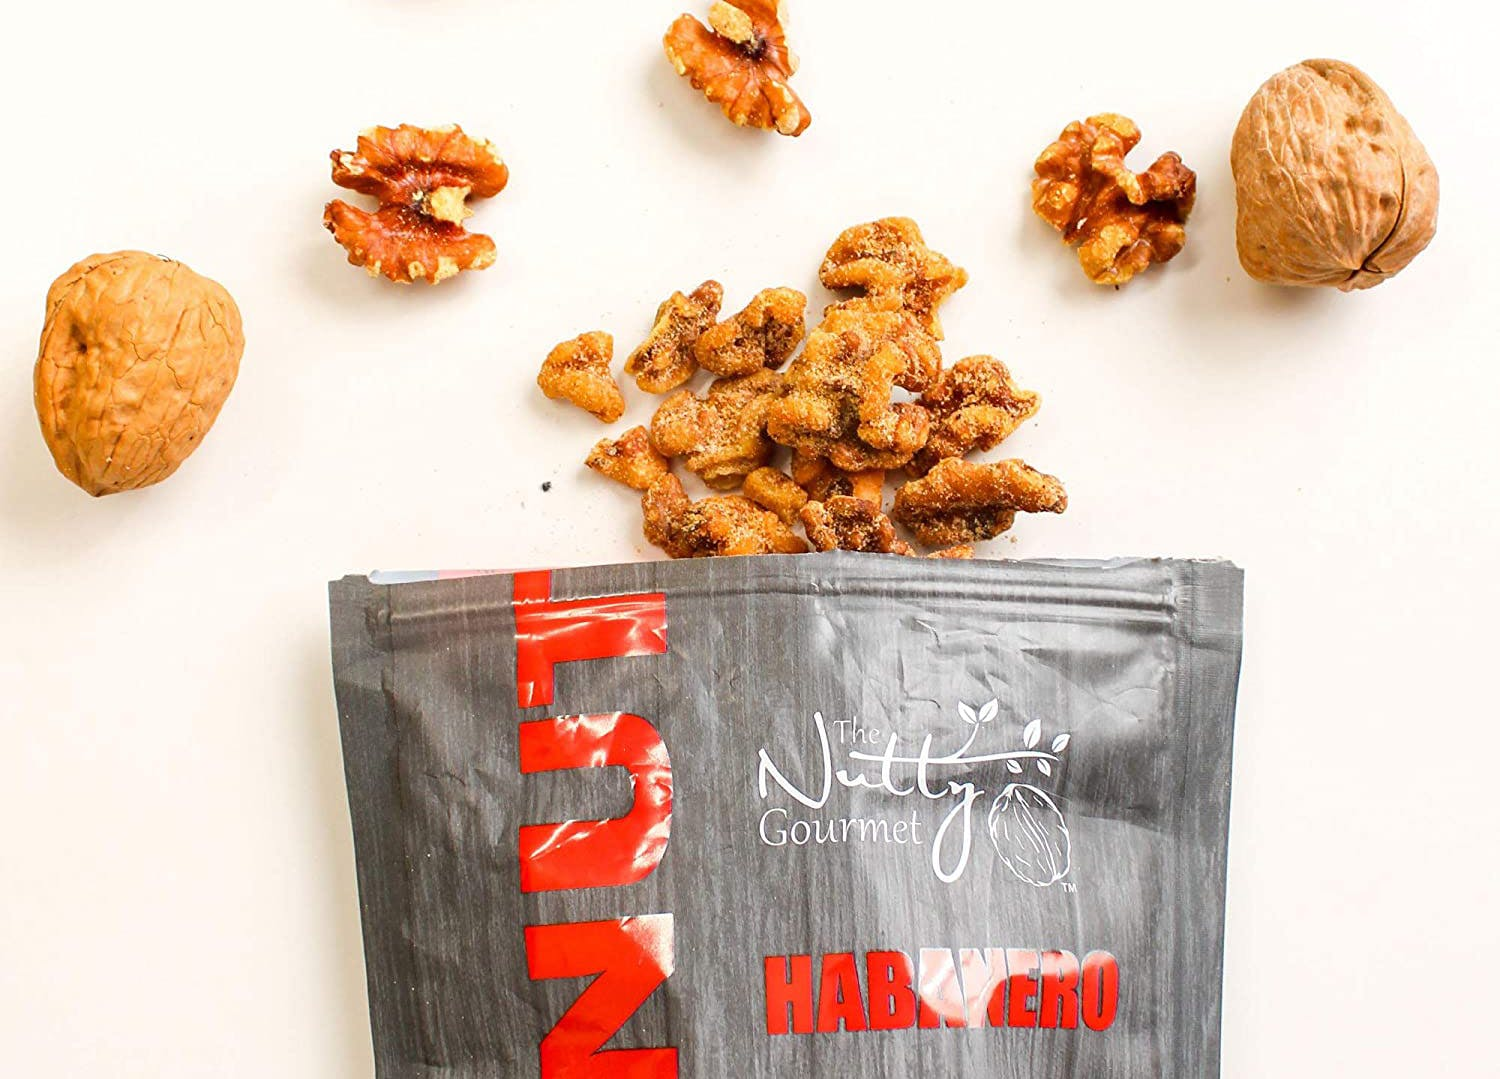 2021 candy trends spicy snacks